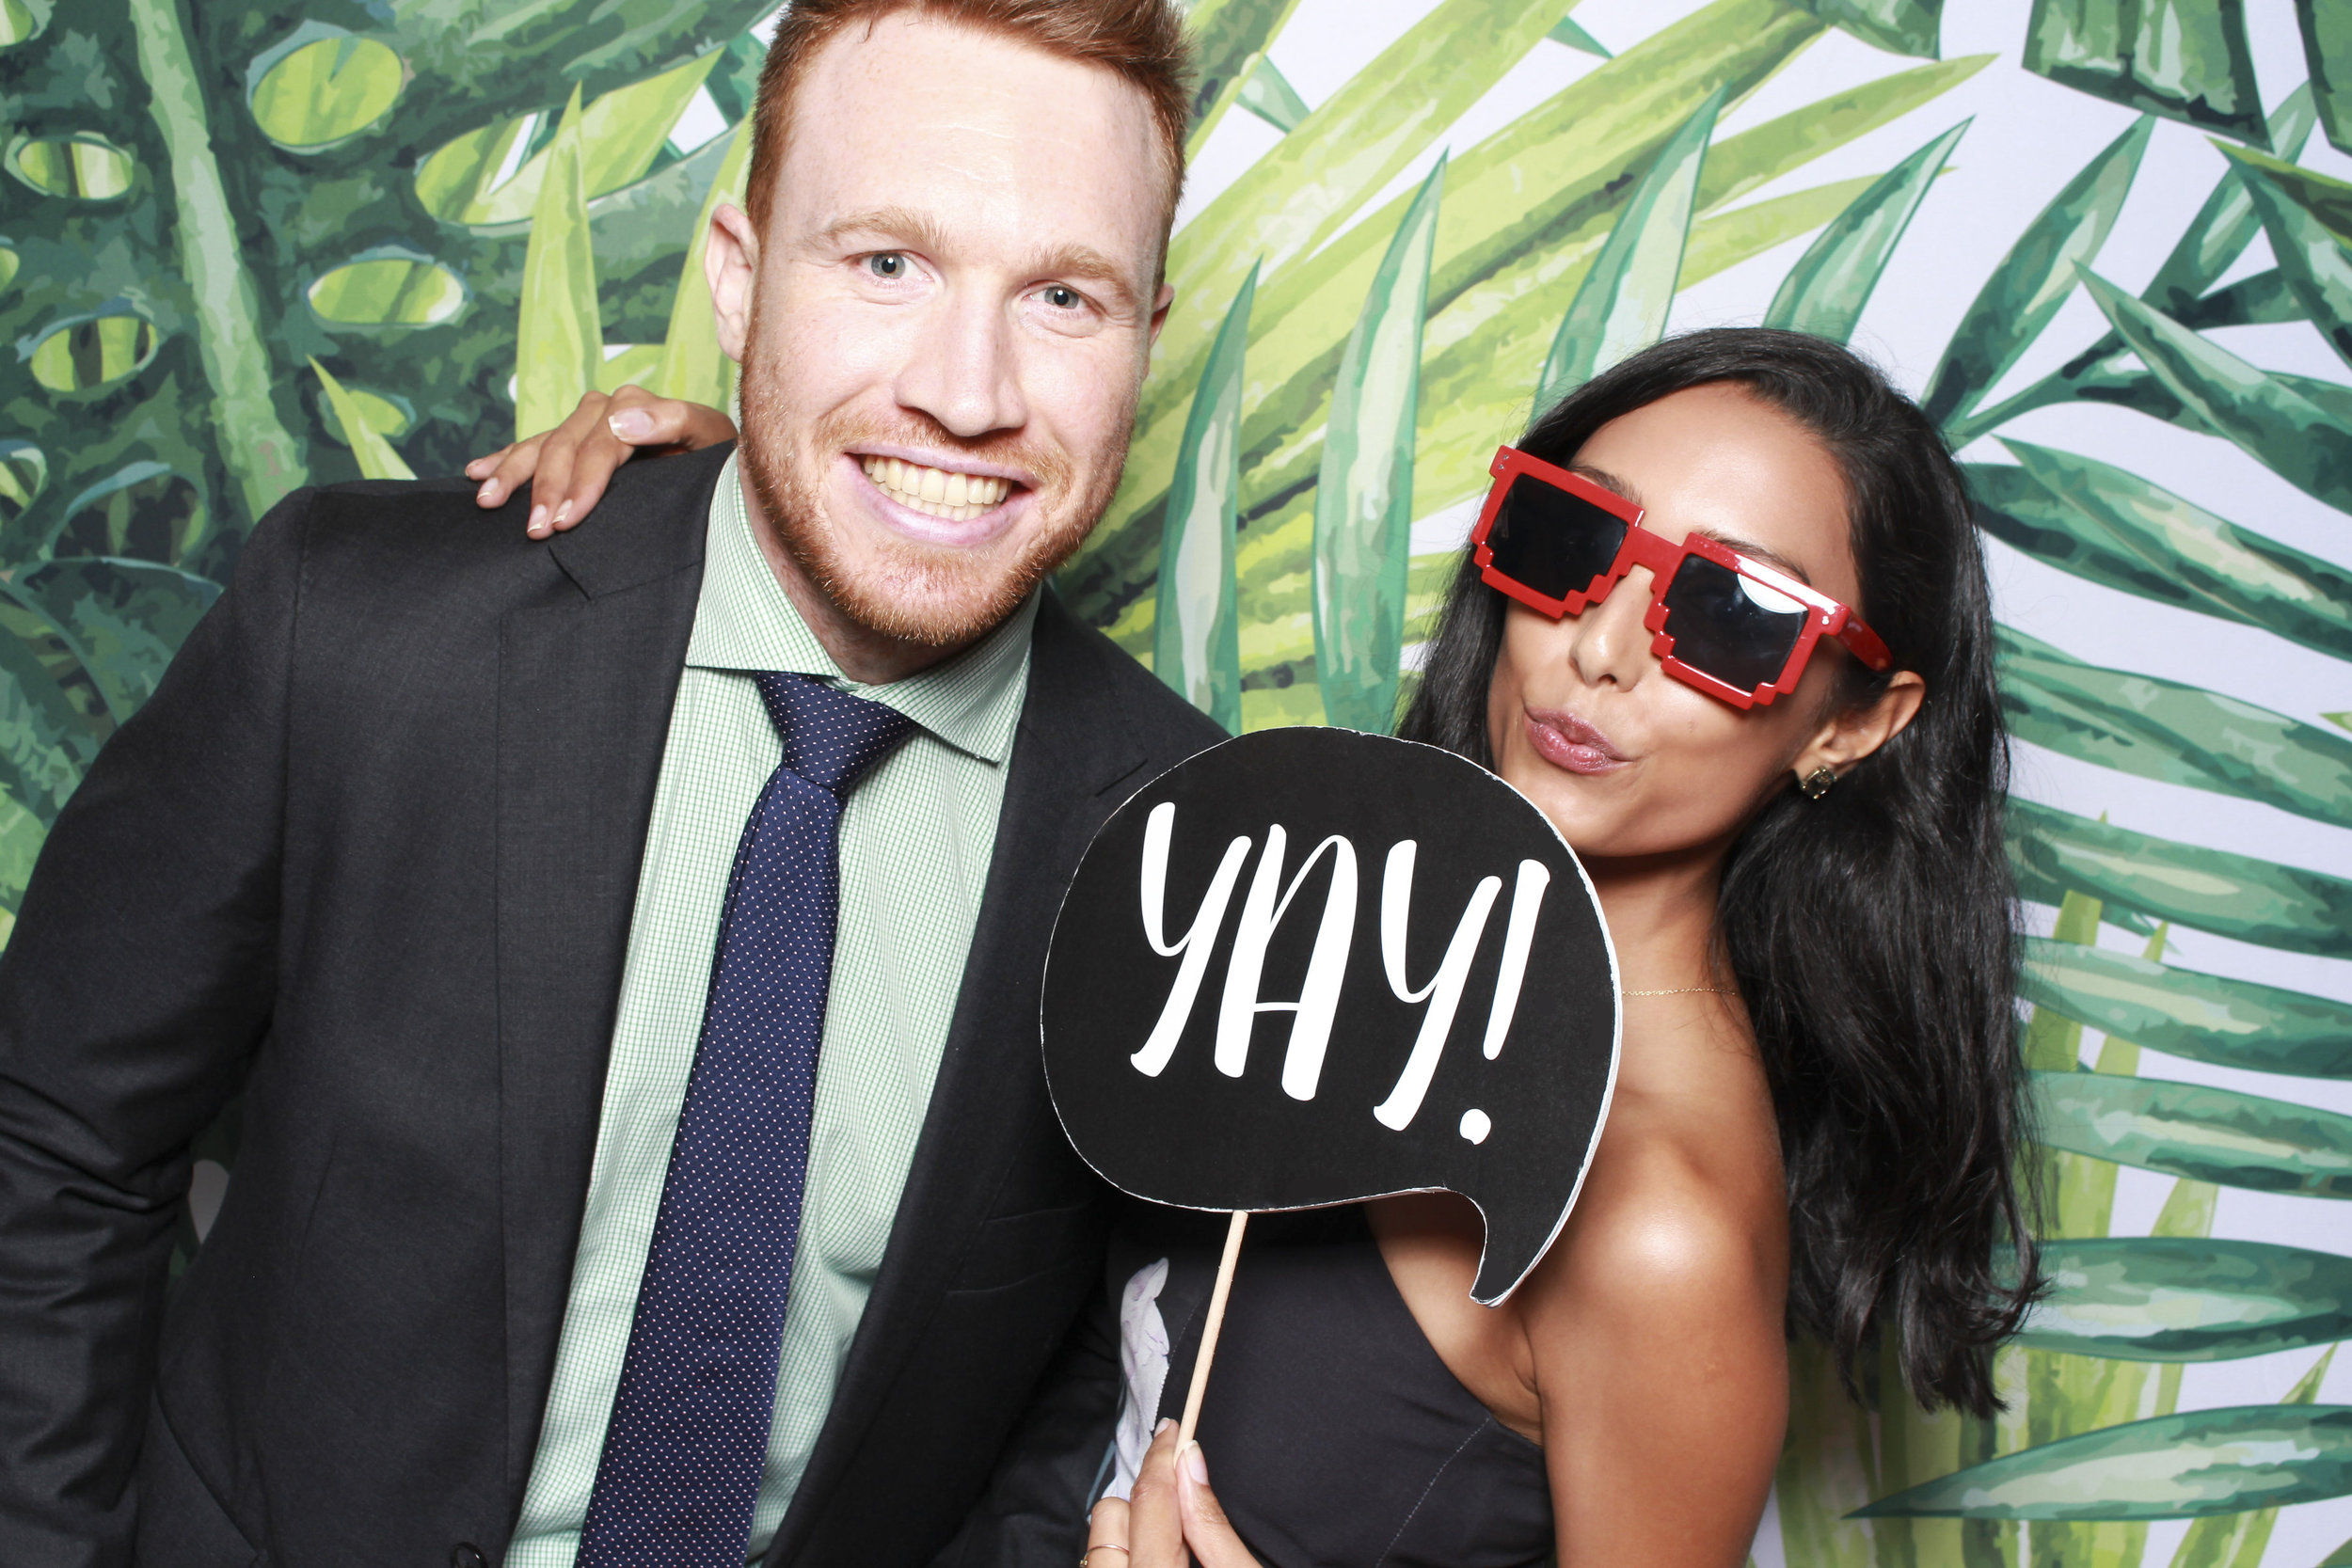 Photo+booth+hire+sydney+wollongong+tropical4.jpg